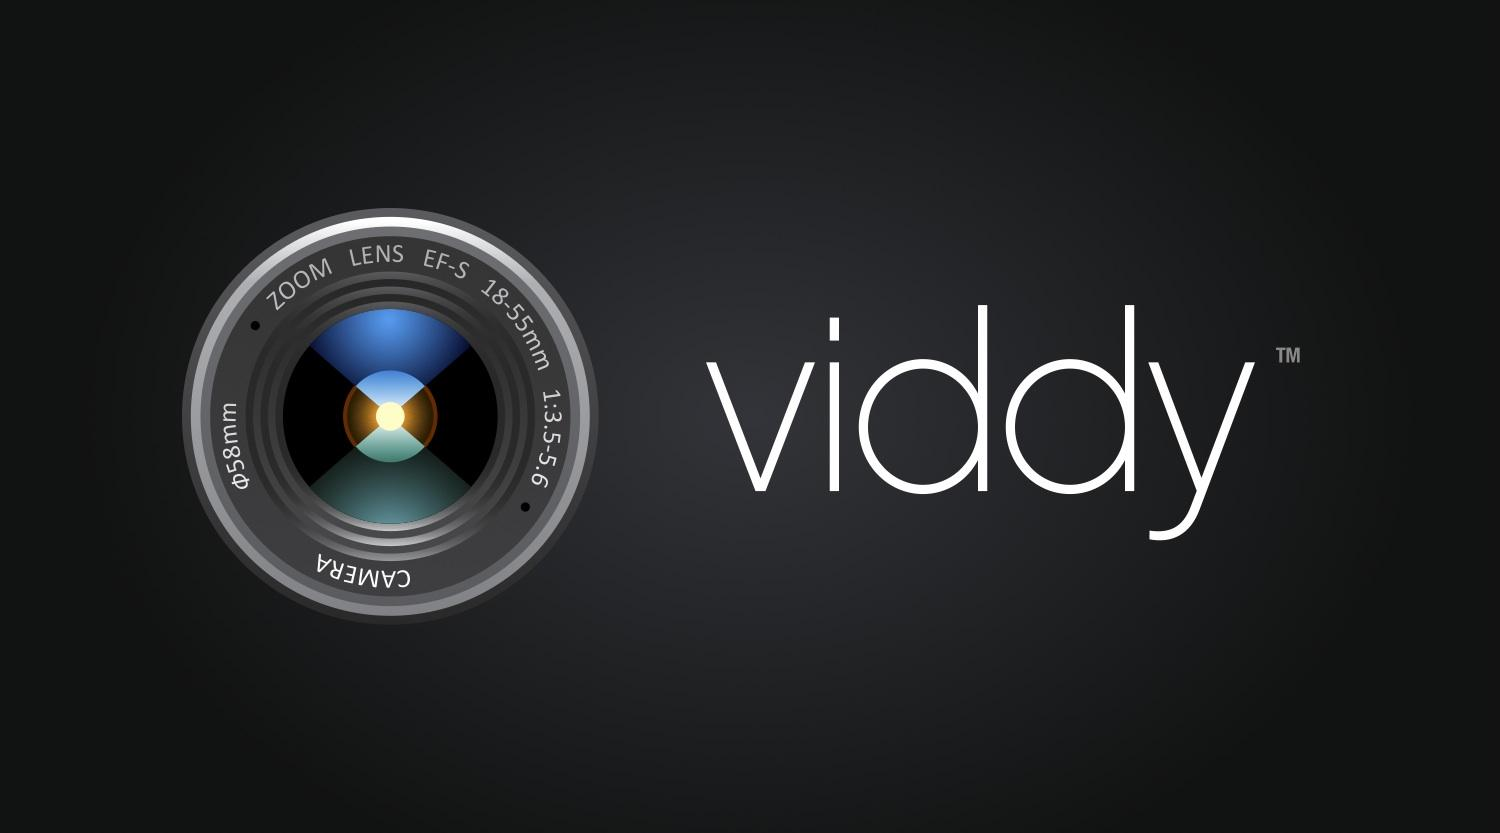 Watch Out for Viddy